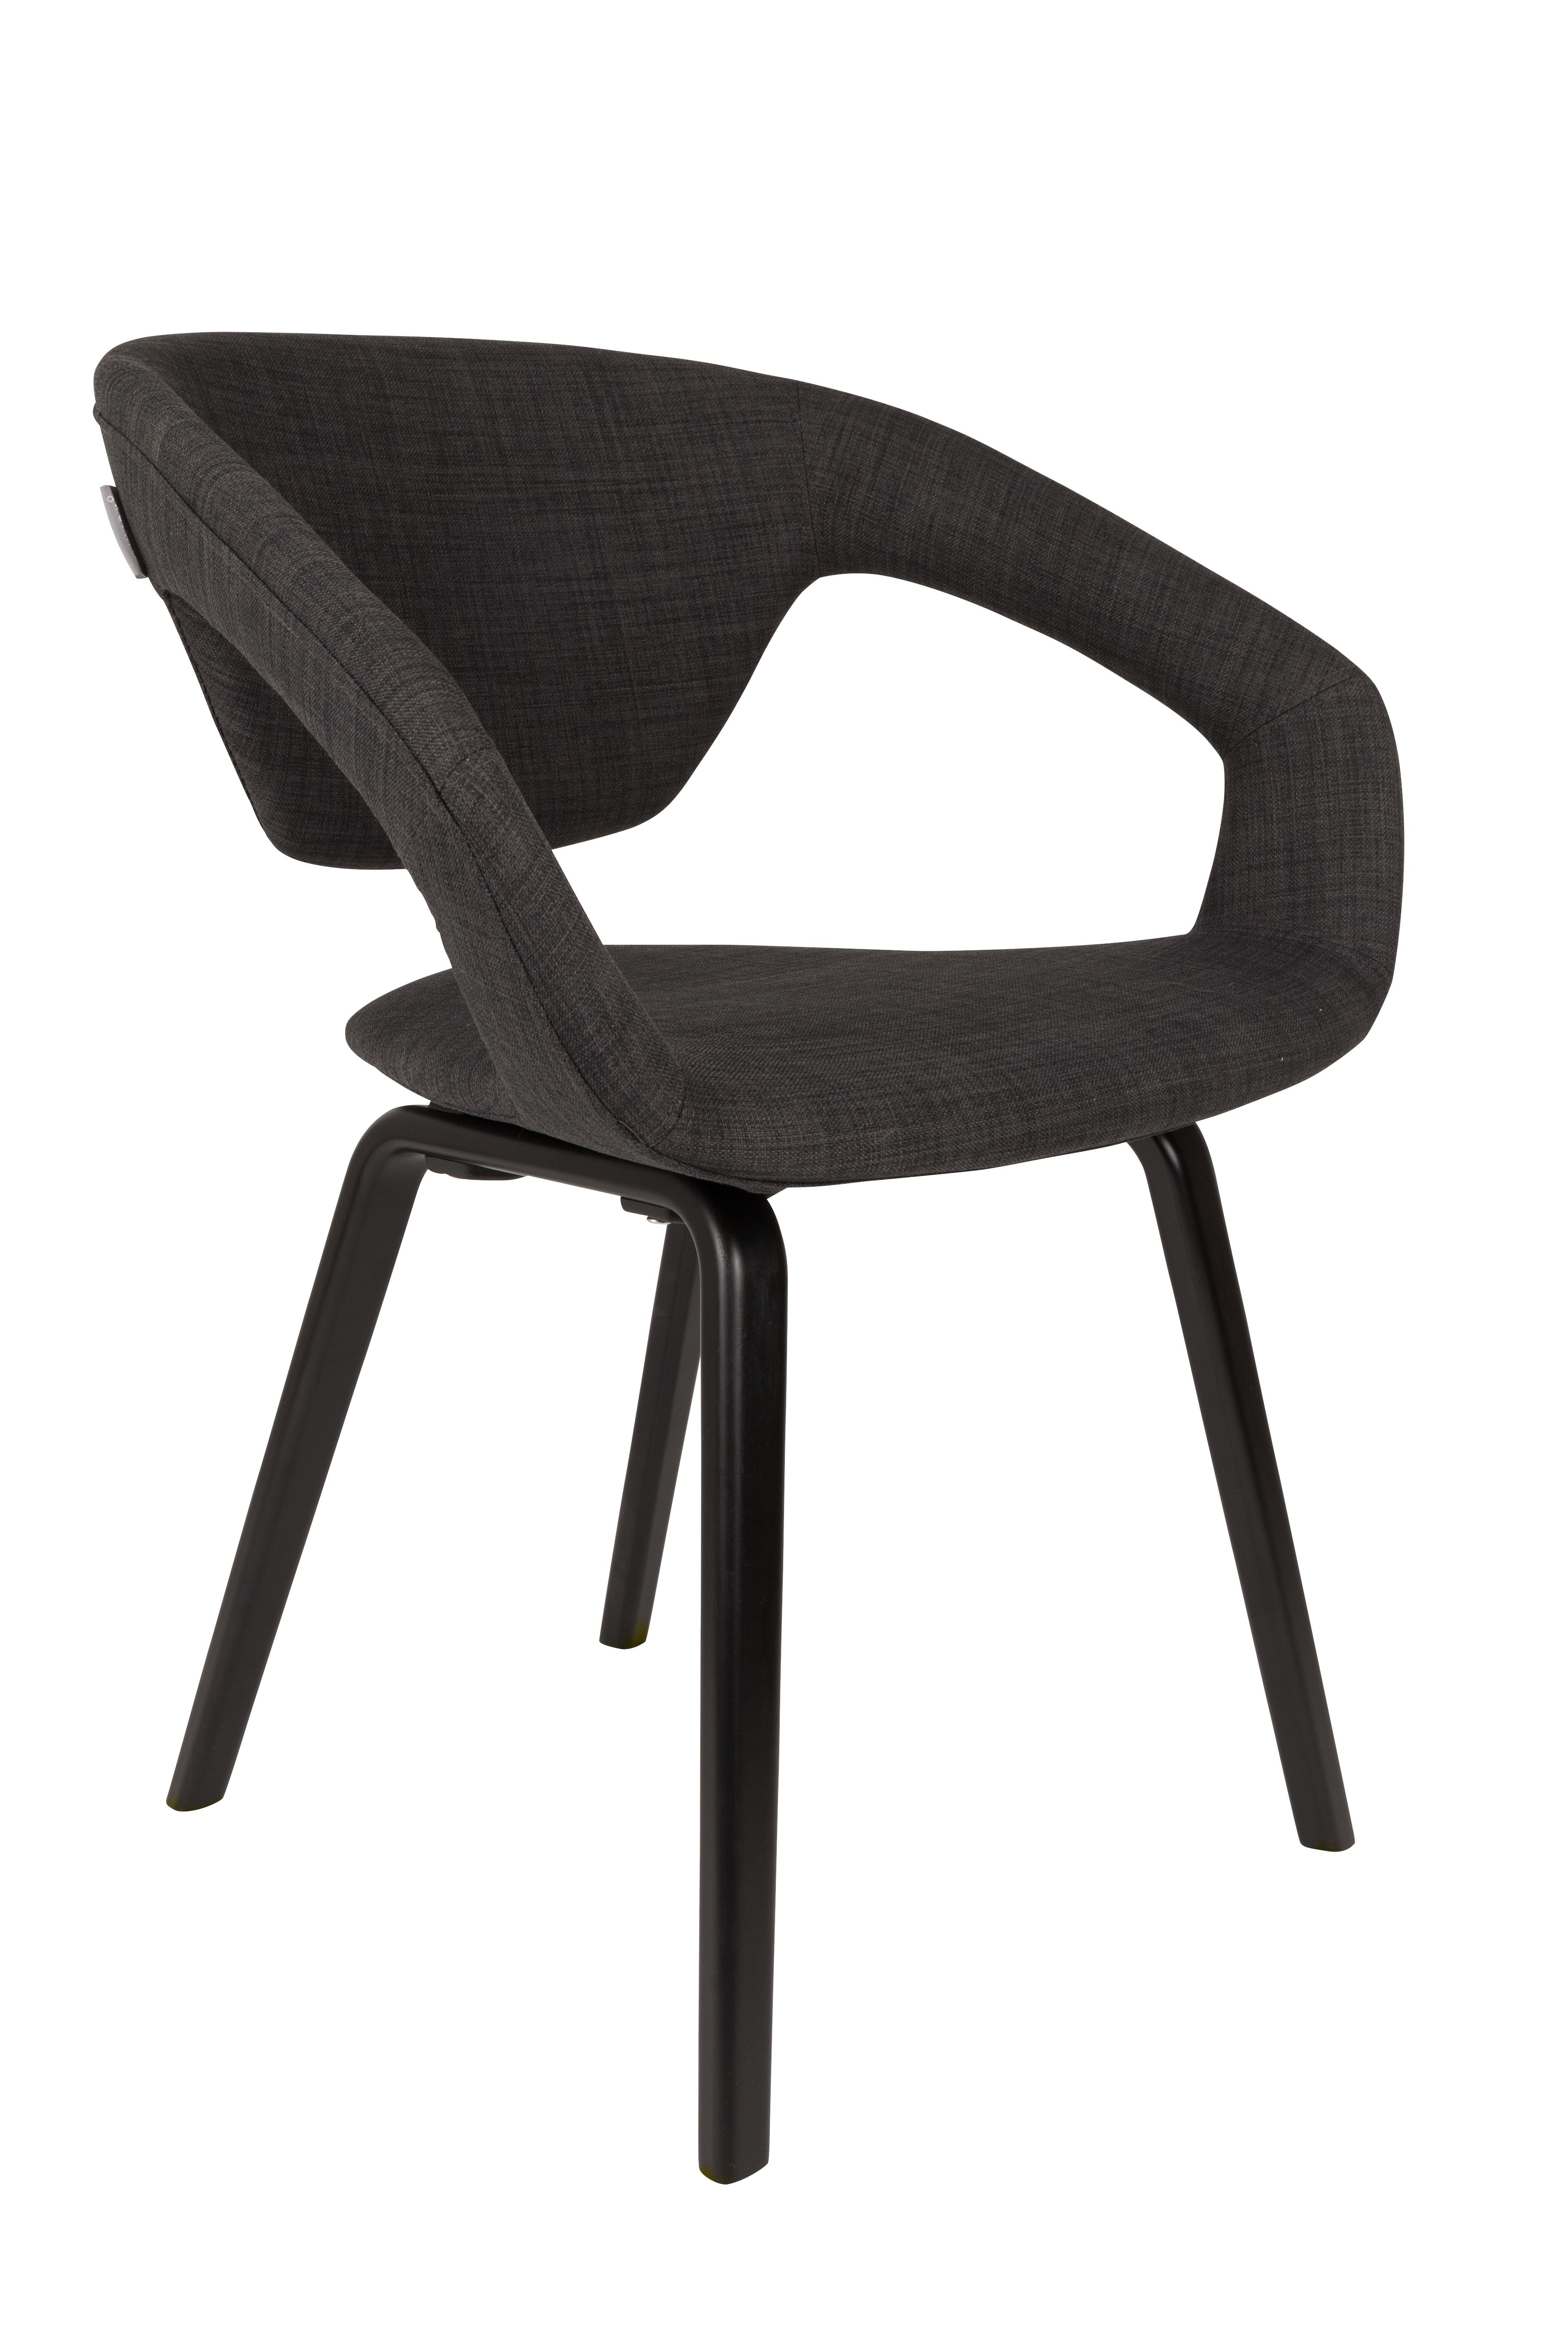 Libelle No 30 2016 Zuiver Chairs Pinterest